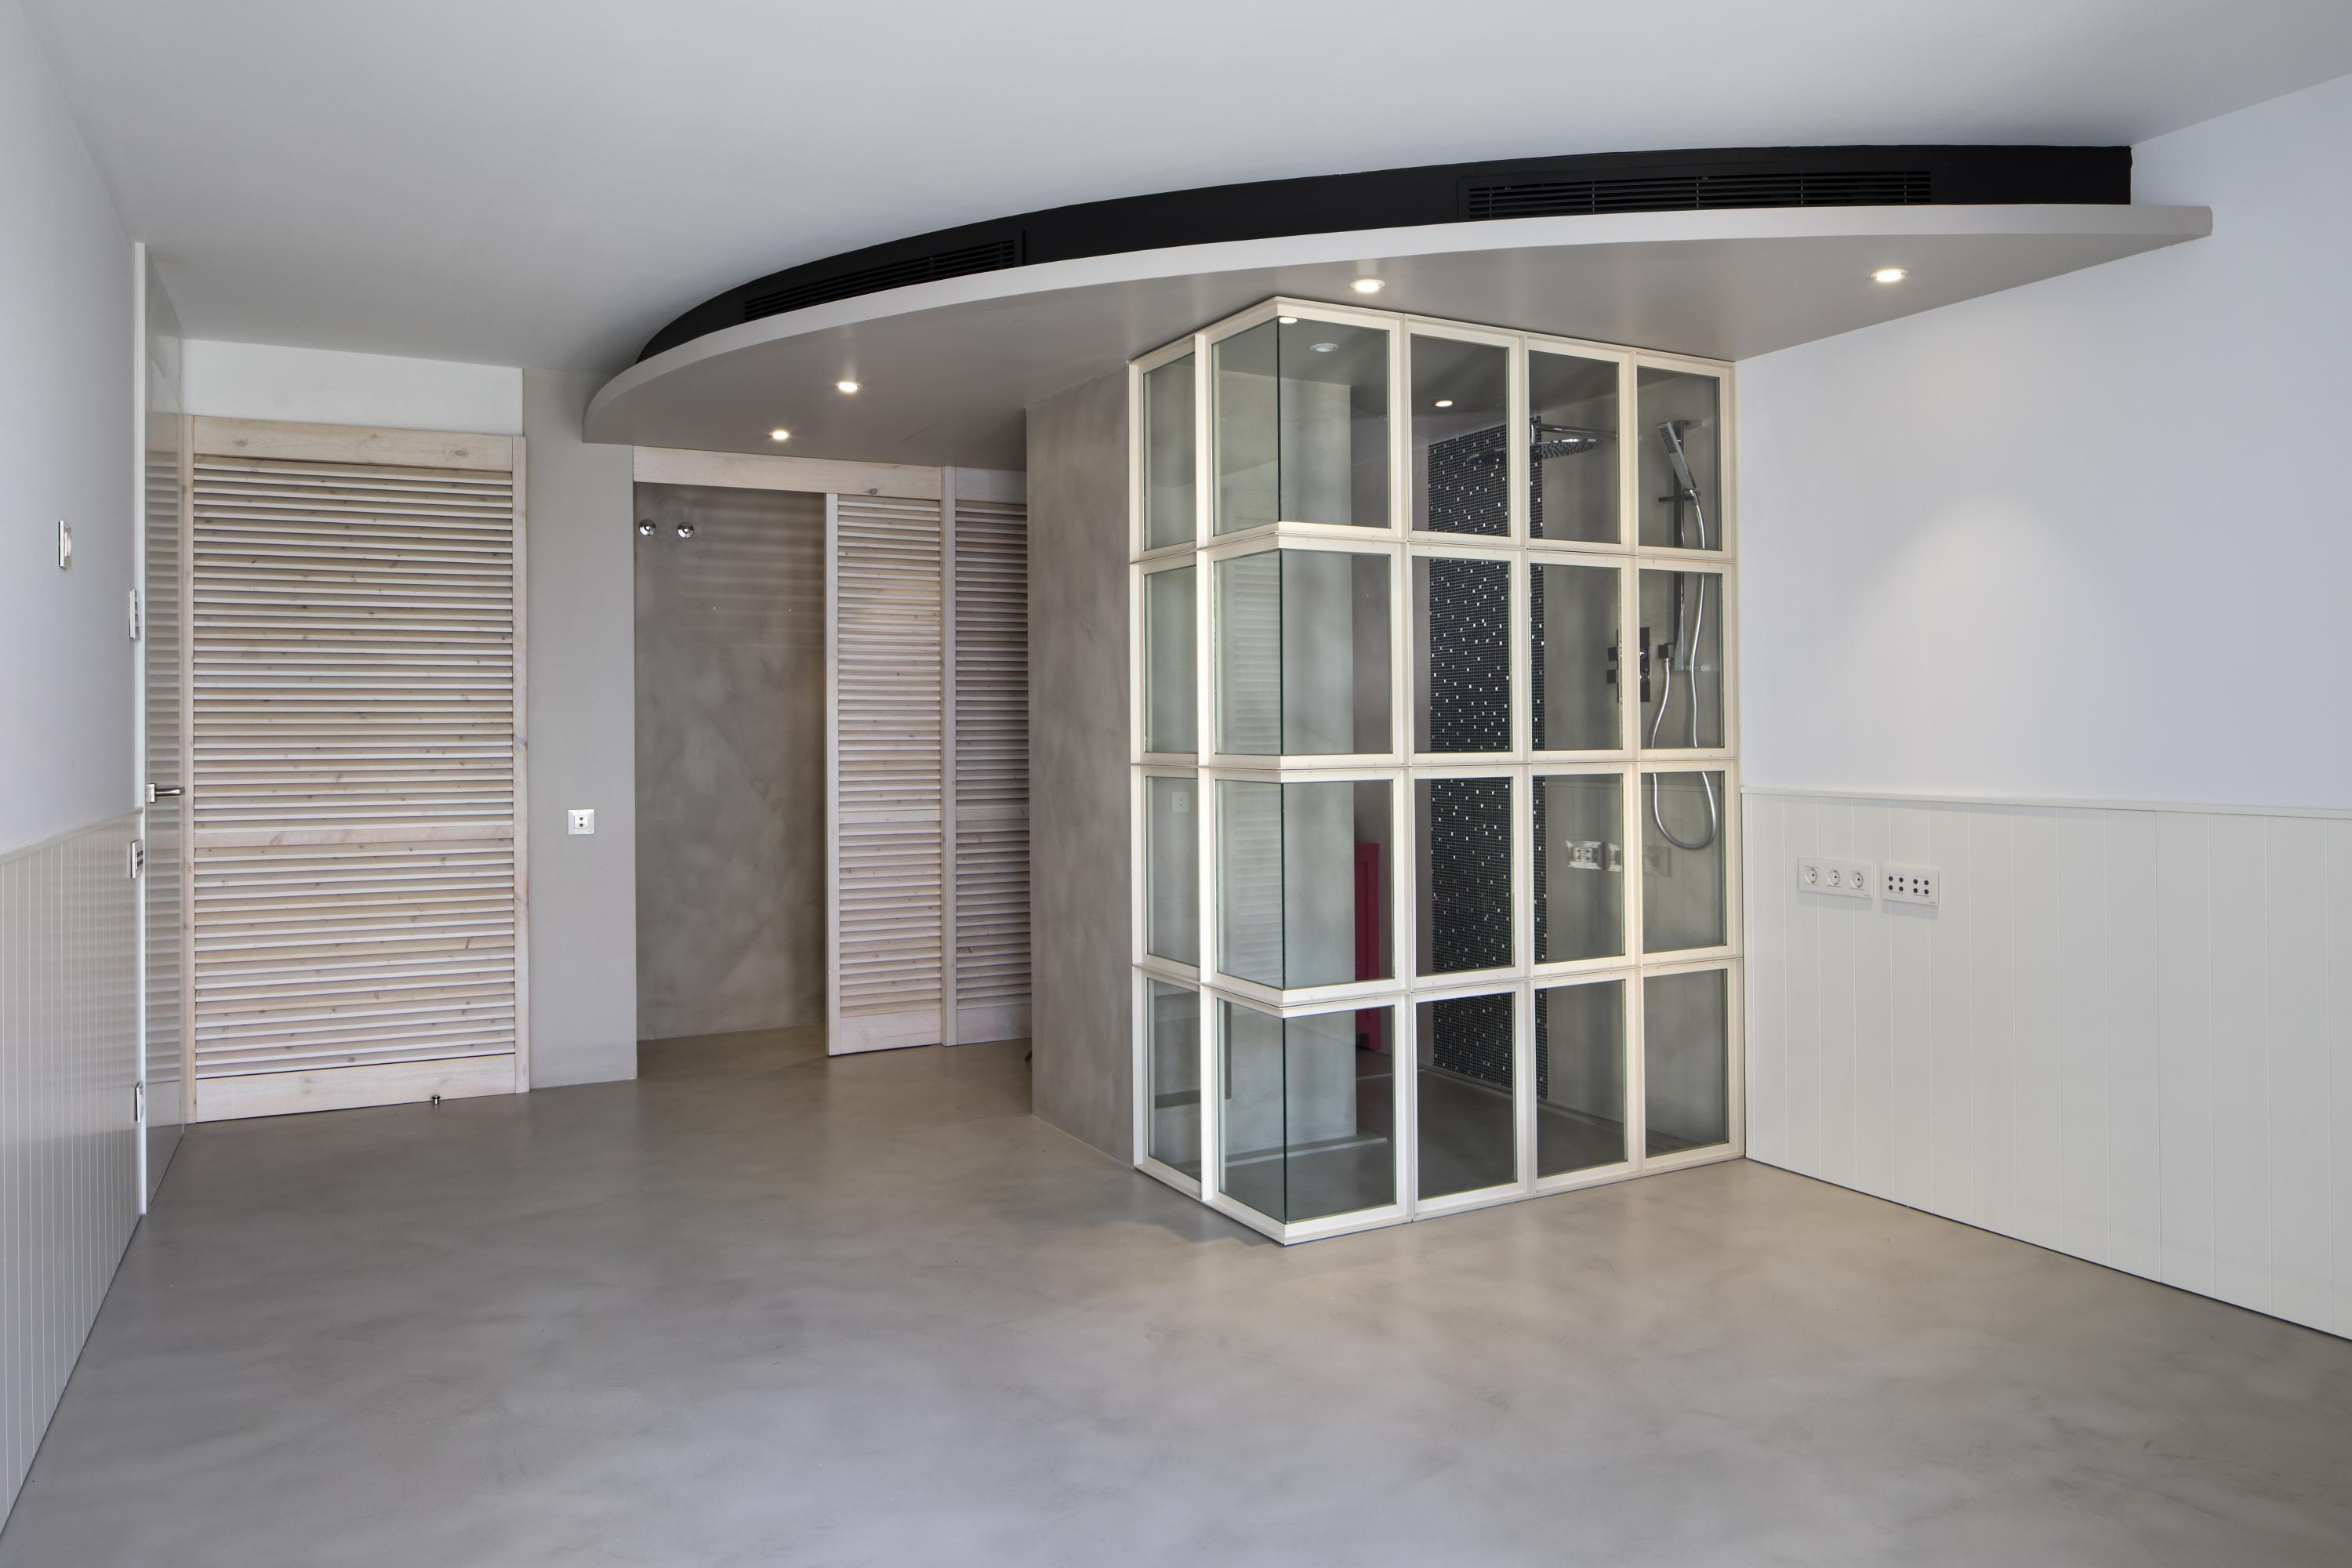 191742 Penthouse for sale in Sarrià-Sant Gervasi, Tres Torres 16